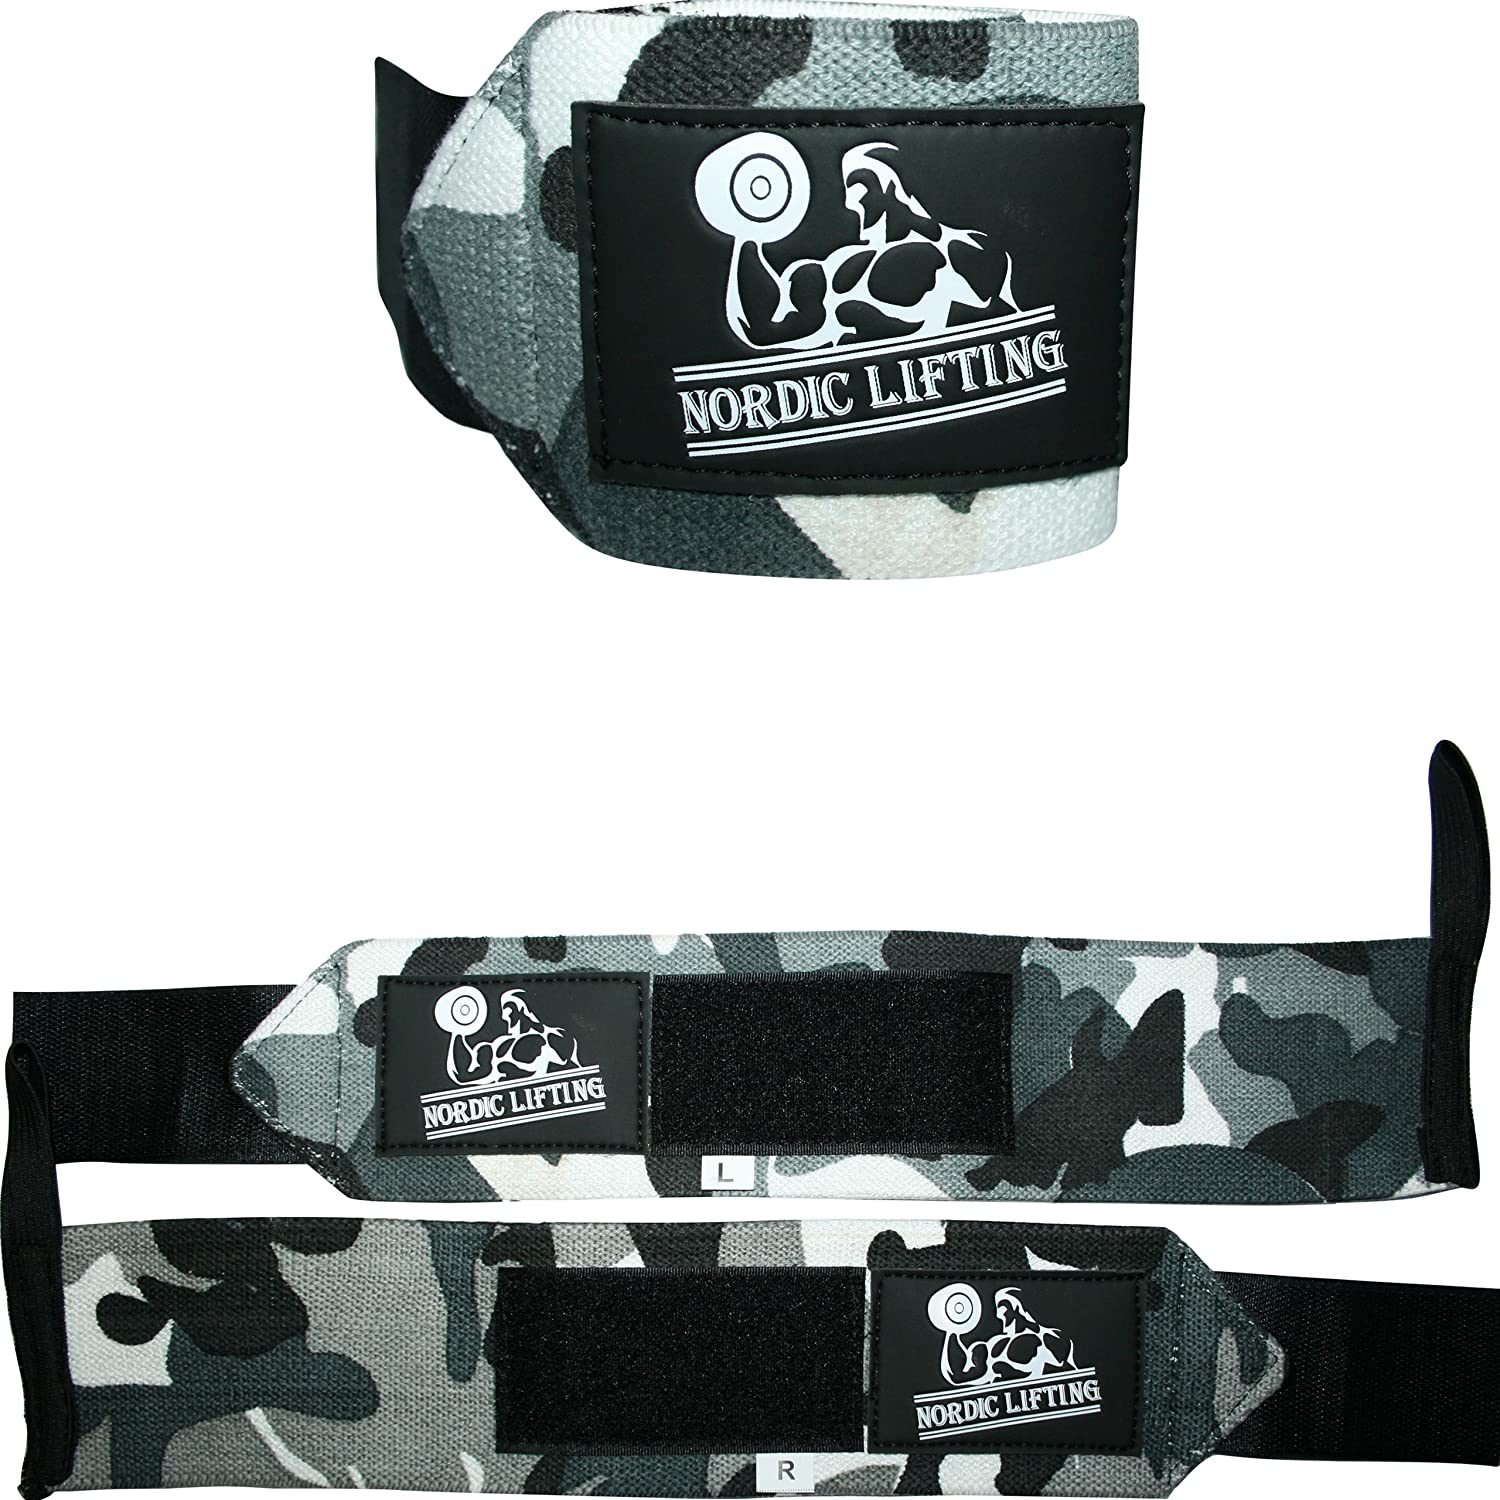 Wrist Wraps (1 Pair/2 Wraps) for Weightlifting/Cross Training/Powerlifting/Bodybuilding - for Women & Men - Premium Quality Equipment for The Absolutely Best Hand Strength & Support - 1 Year Warranty